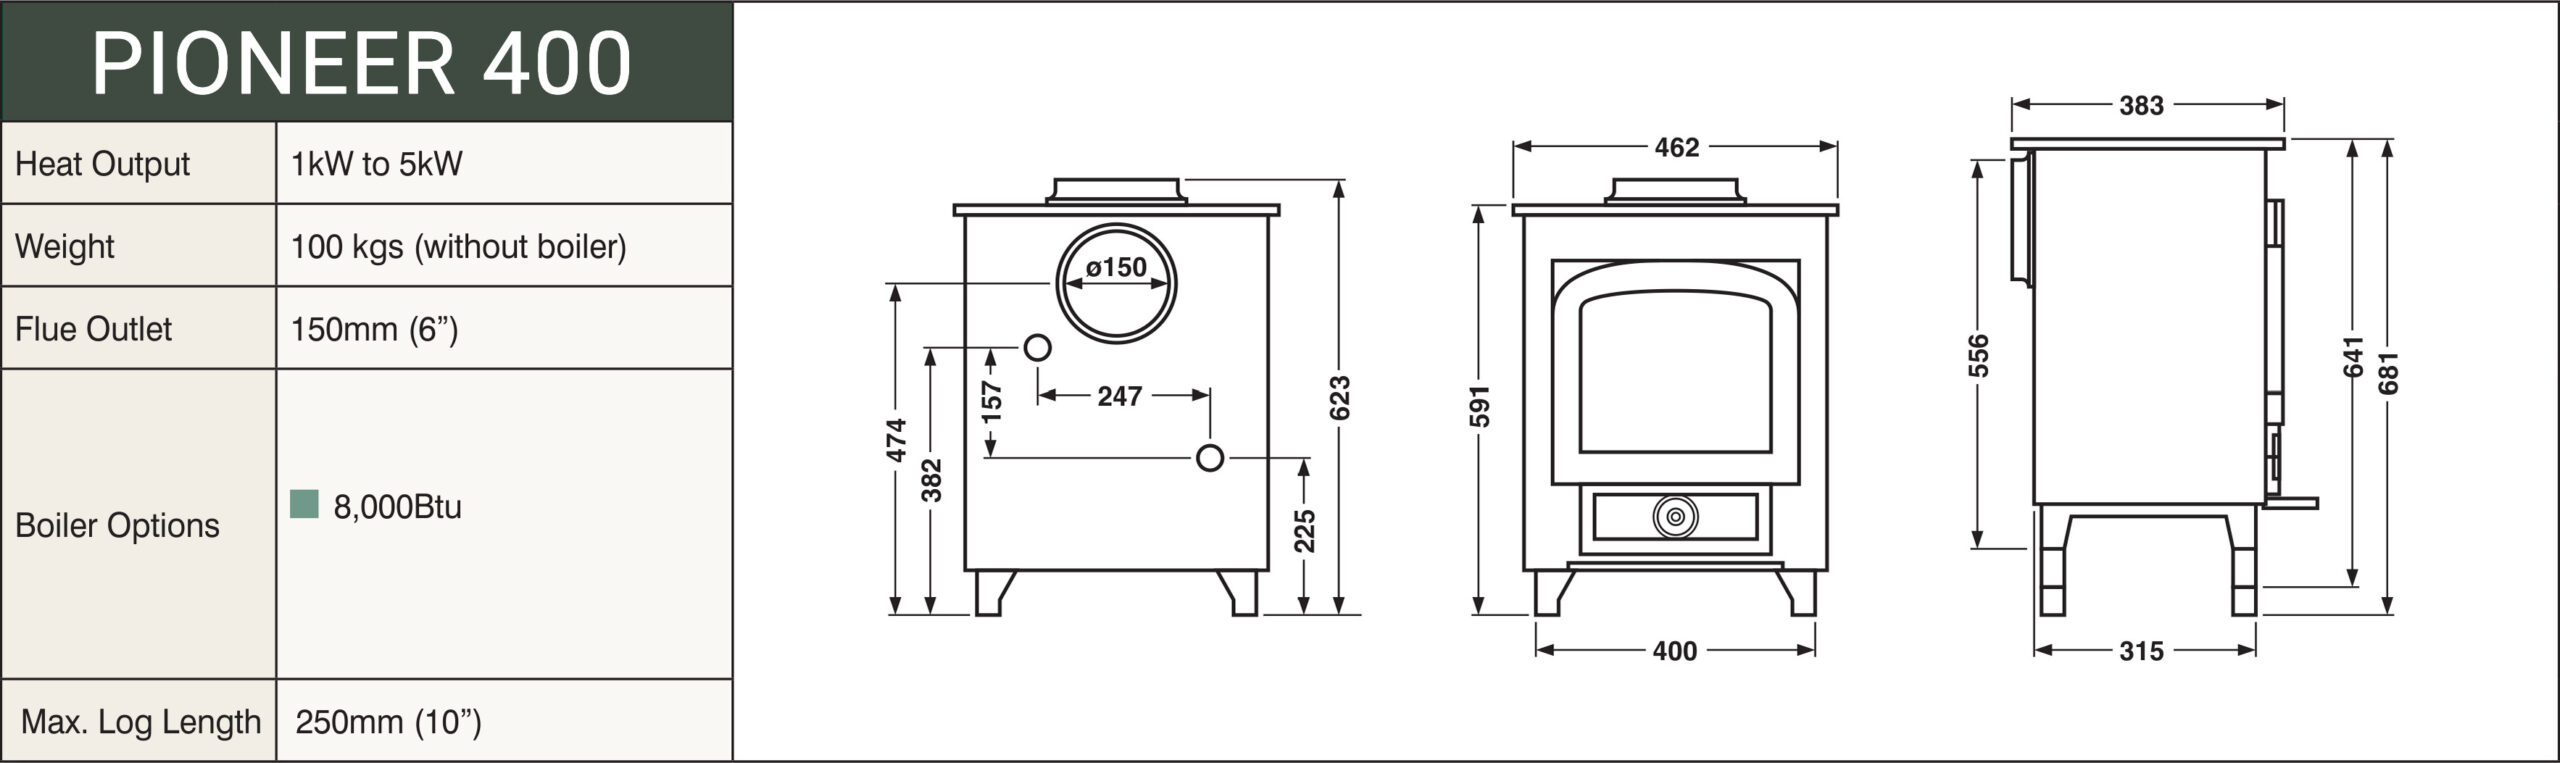 Clearview Pioneer 400 Multifuel Stove - Clearview Stoves Size schematic